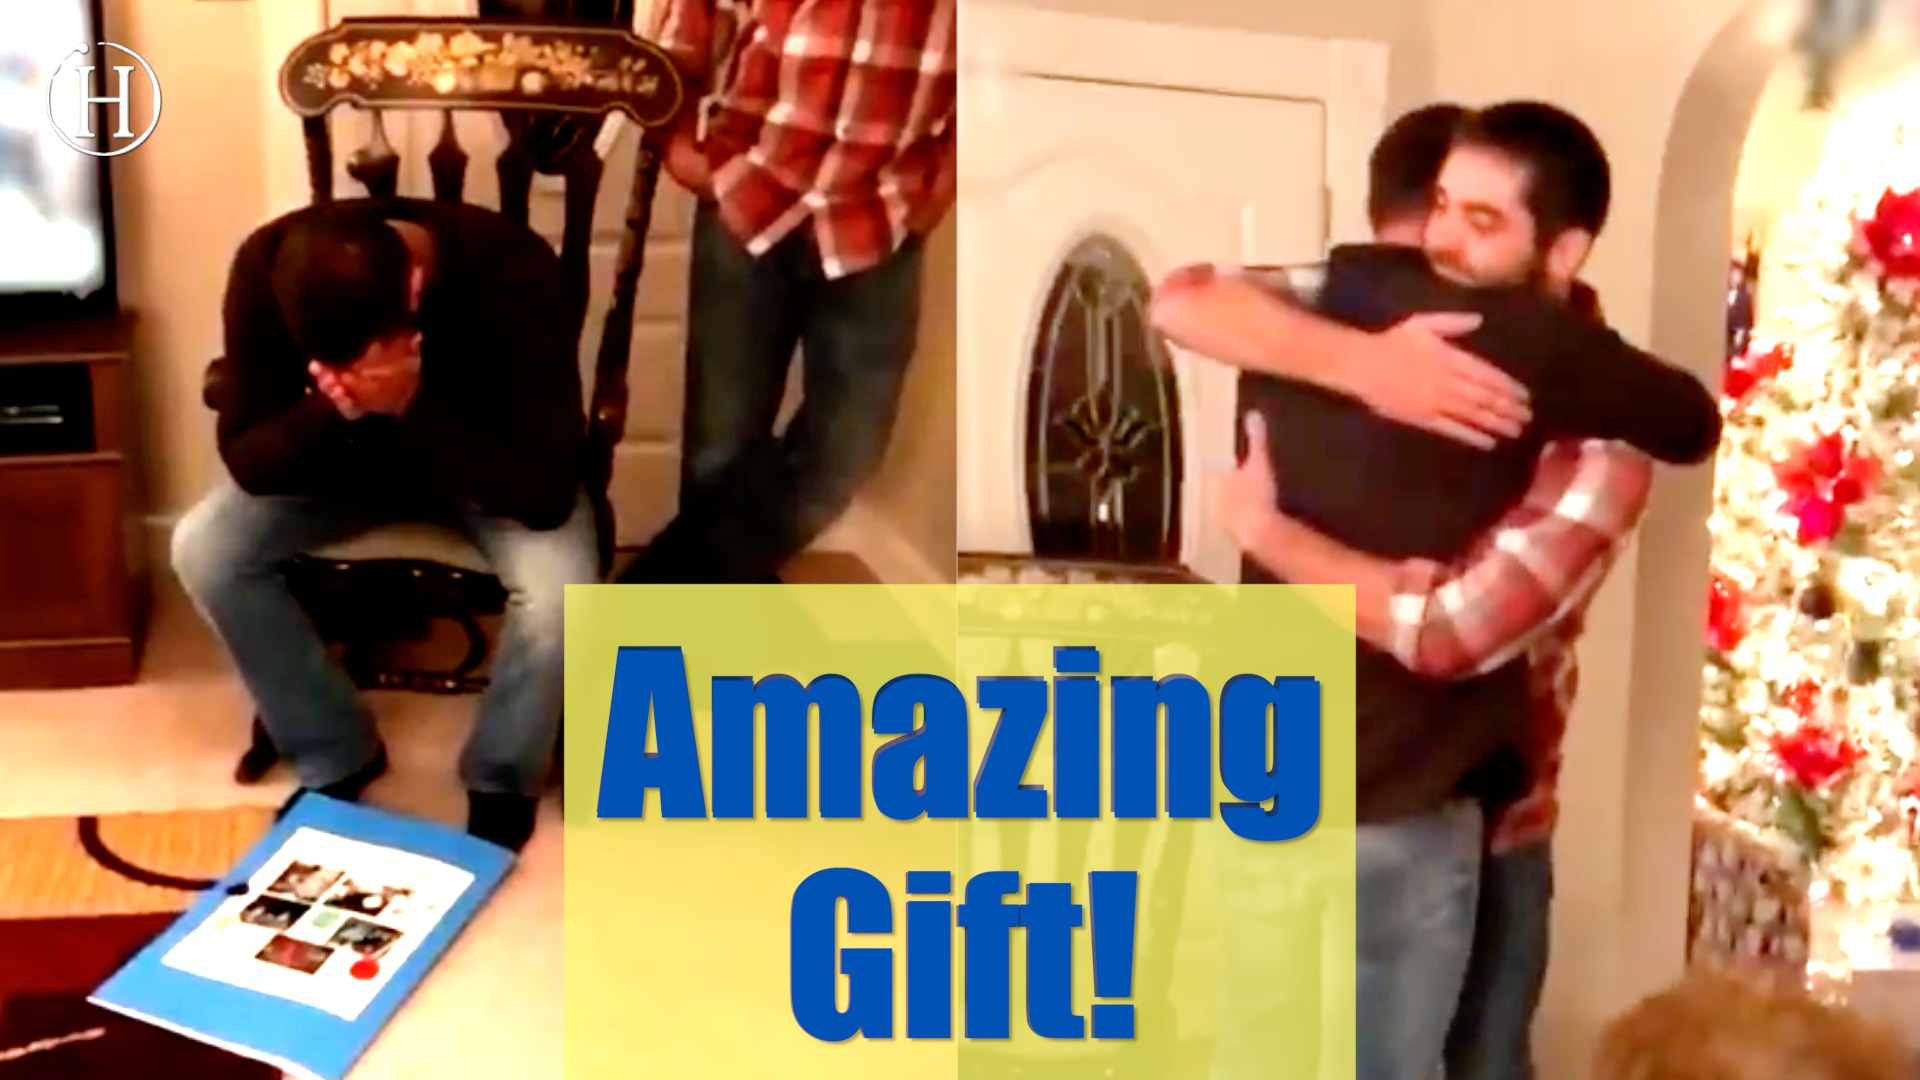 Guy Surprises Brother With Amazing Gift | Humanity Life